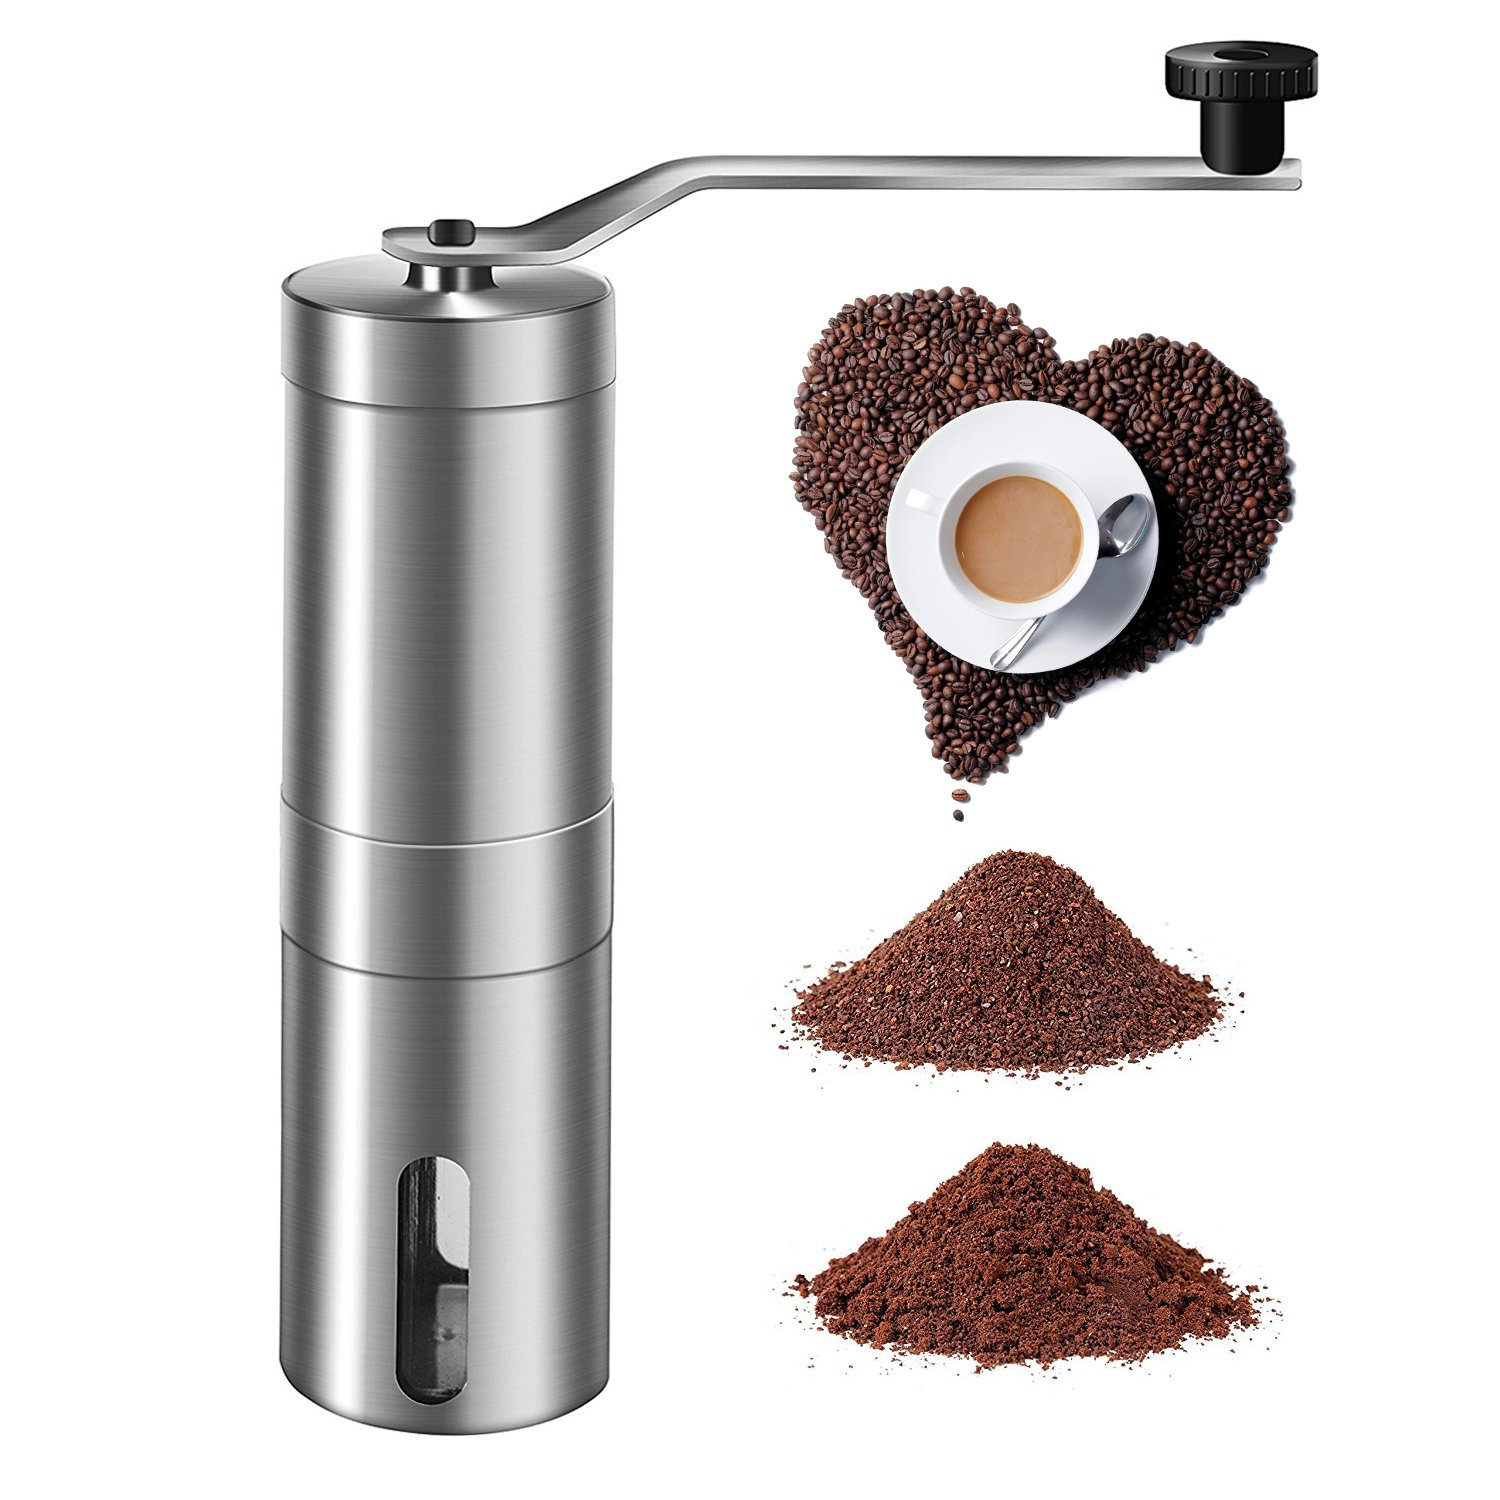 Top Rated Manual Coffee Grinder Maker Best Spice & Coffee Bean Grinder Stainless Steel Blades Adjustable Portable B-sea